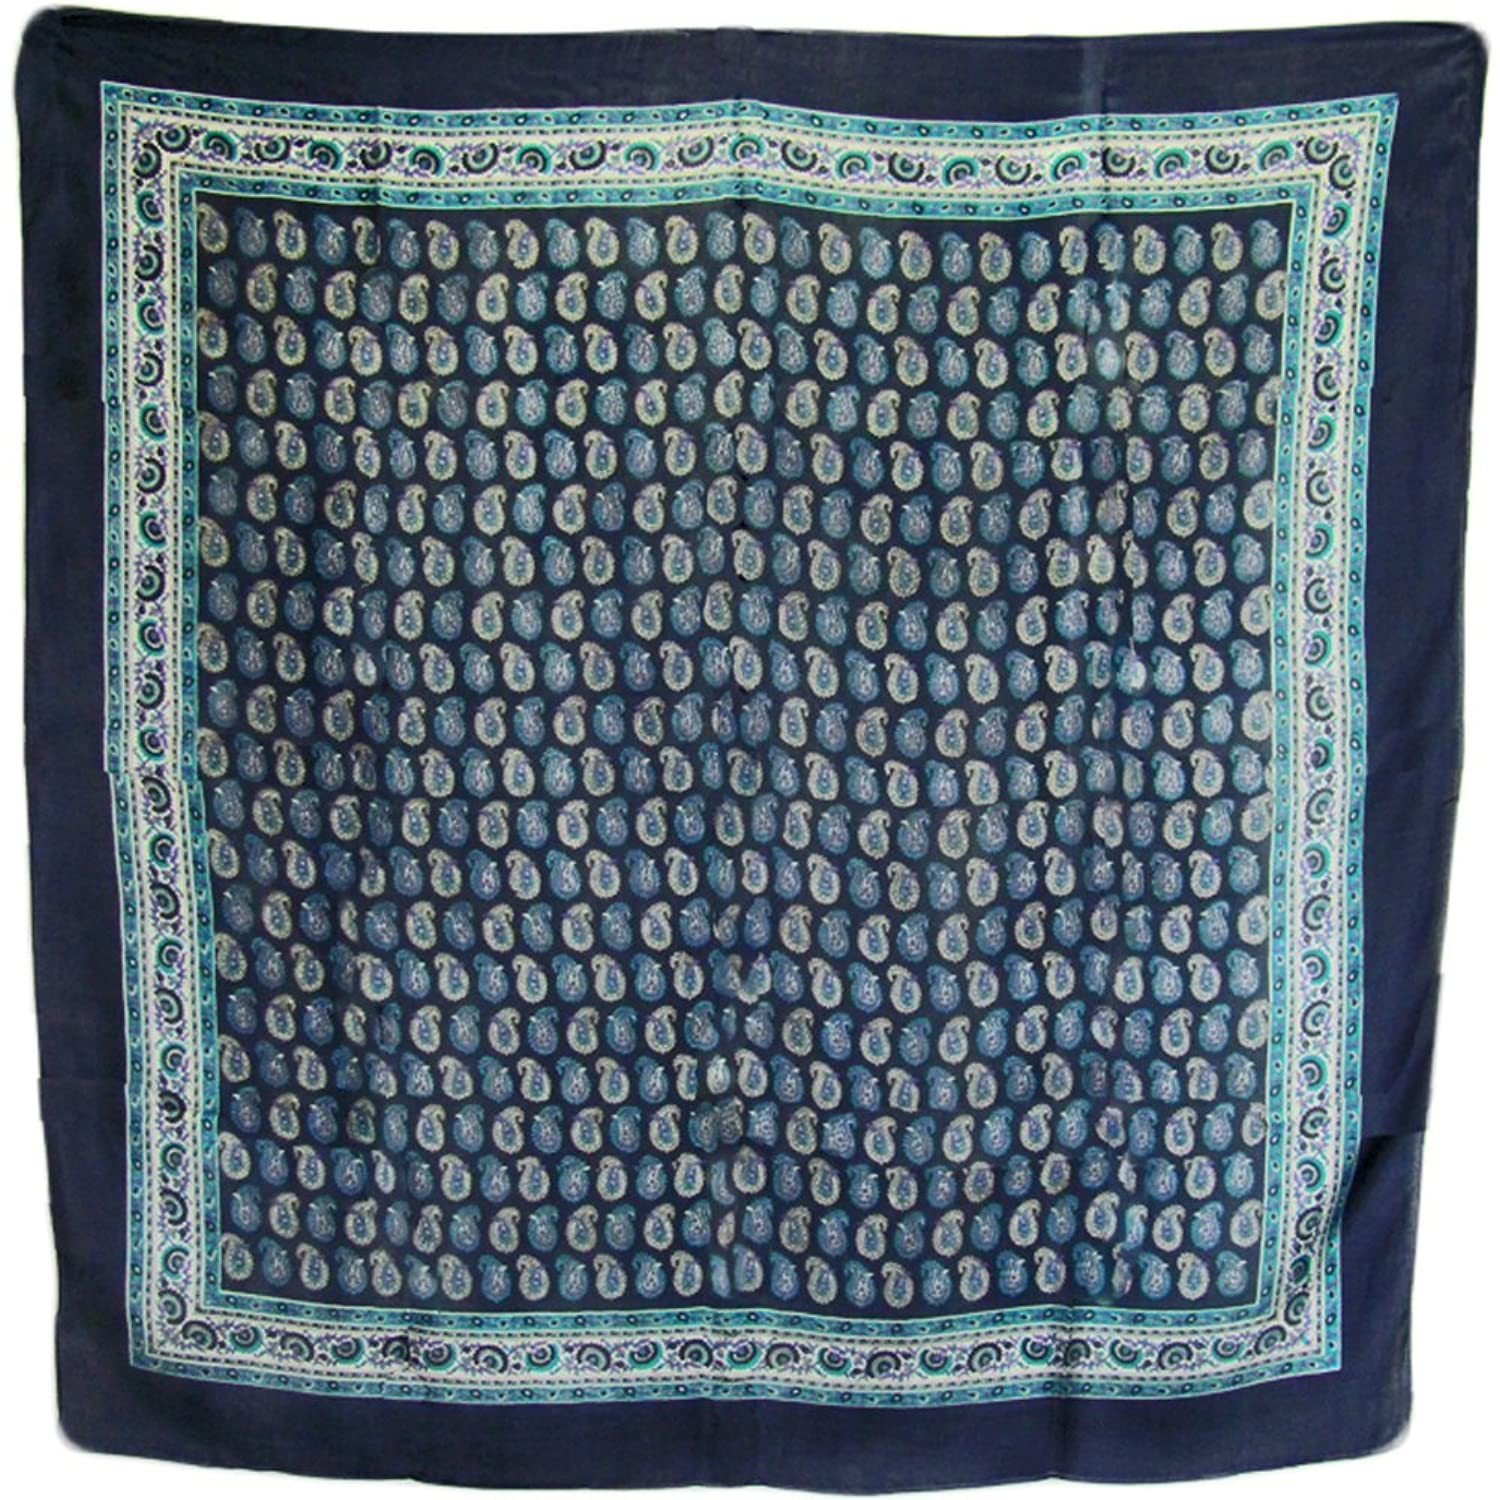 "Indian Classic Ethnic Navy Blue Paisley Print Square Silk Scarf Shawl (40"" x 40"")"